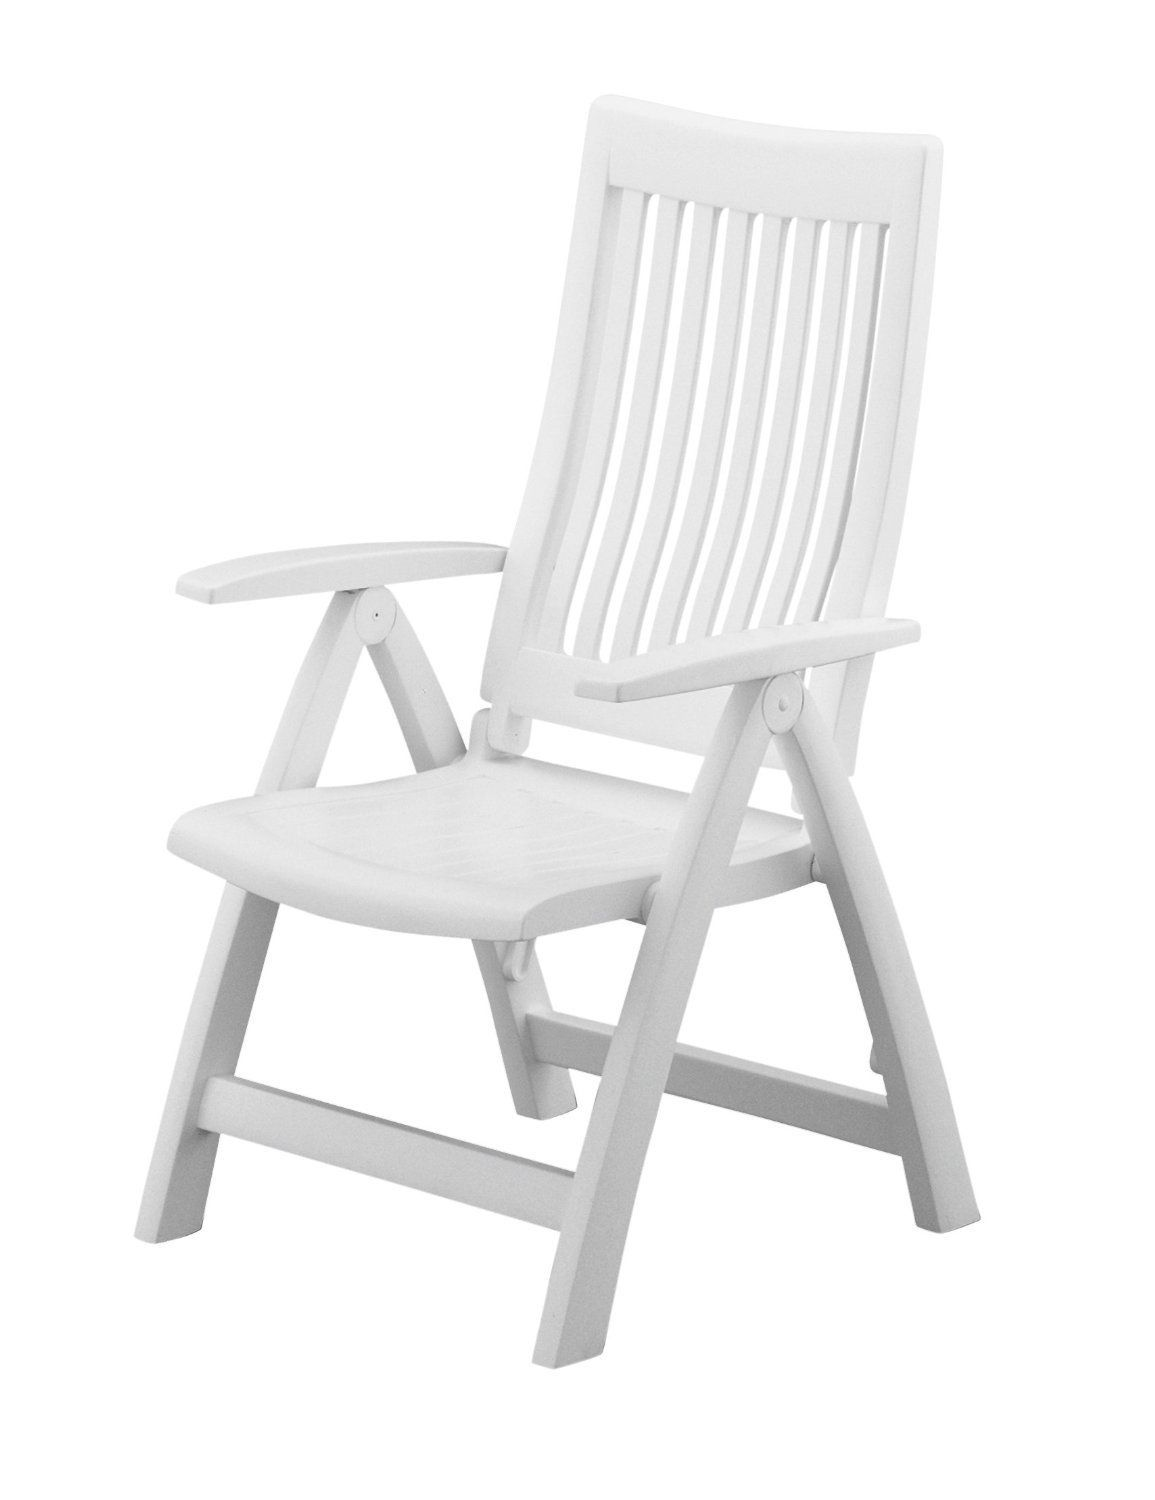 Perfect Amazon.com : KETTLER Roma High Back Chair : Resin Chairs : Patio, Lawn